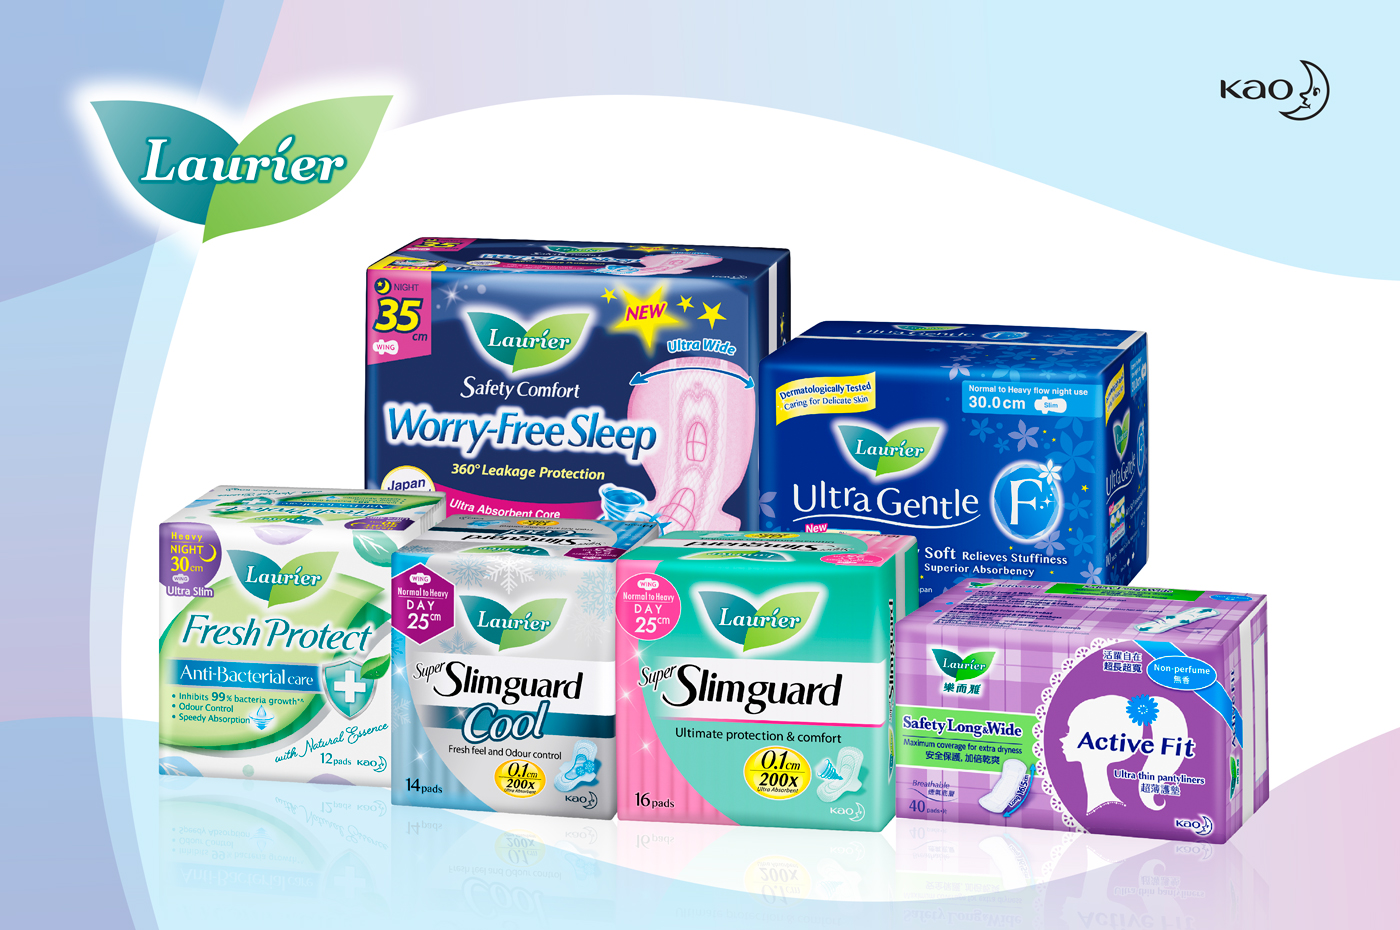 Enjoy 10% off all Laurier sanitary pads and pantyliners